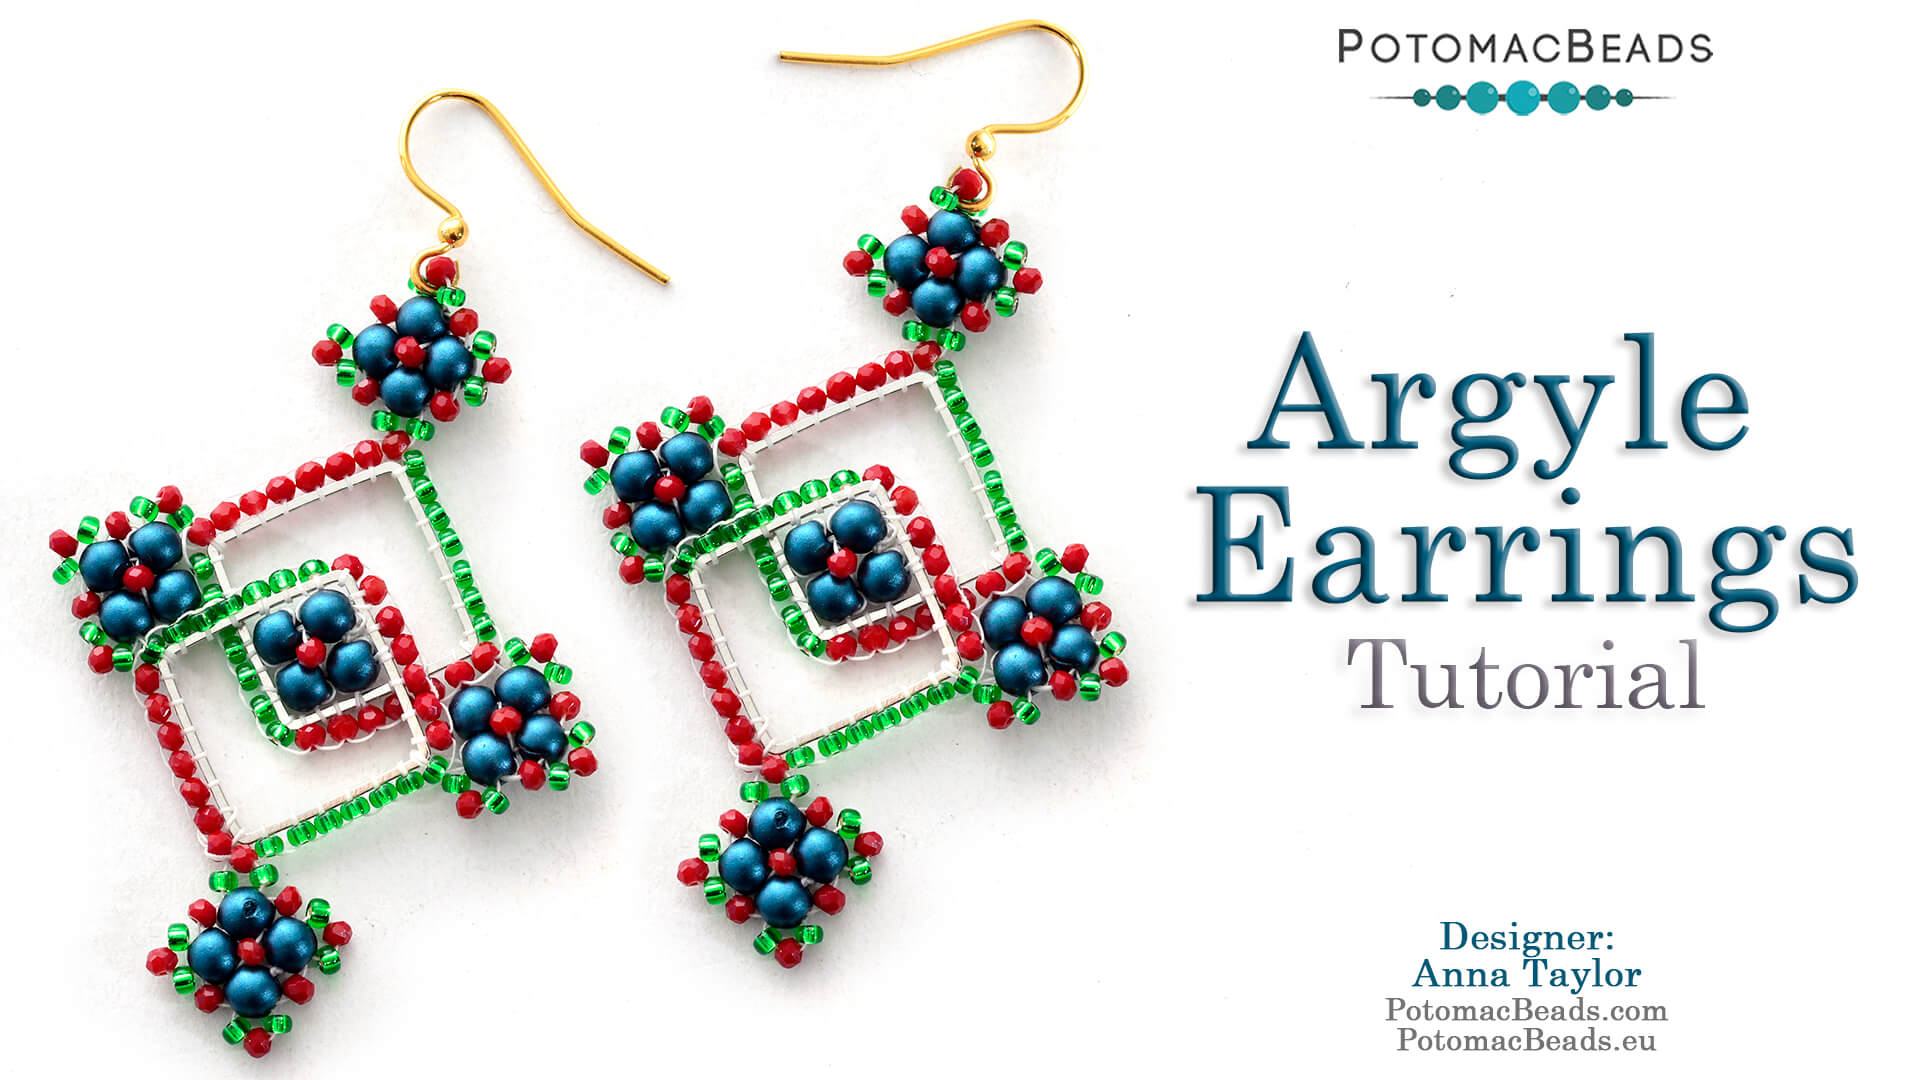 How to Bead Jewelry / Beading Tutorials & Jewel Making Videos / Holiday Themed Projects / Argyle Earrings Tutorial